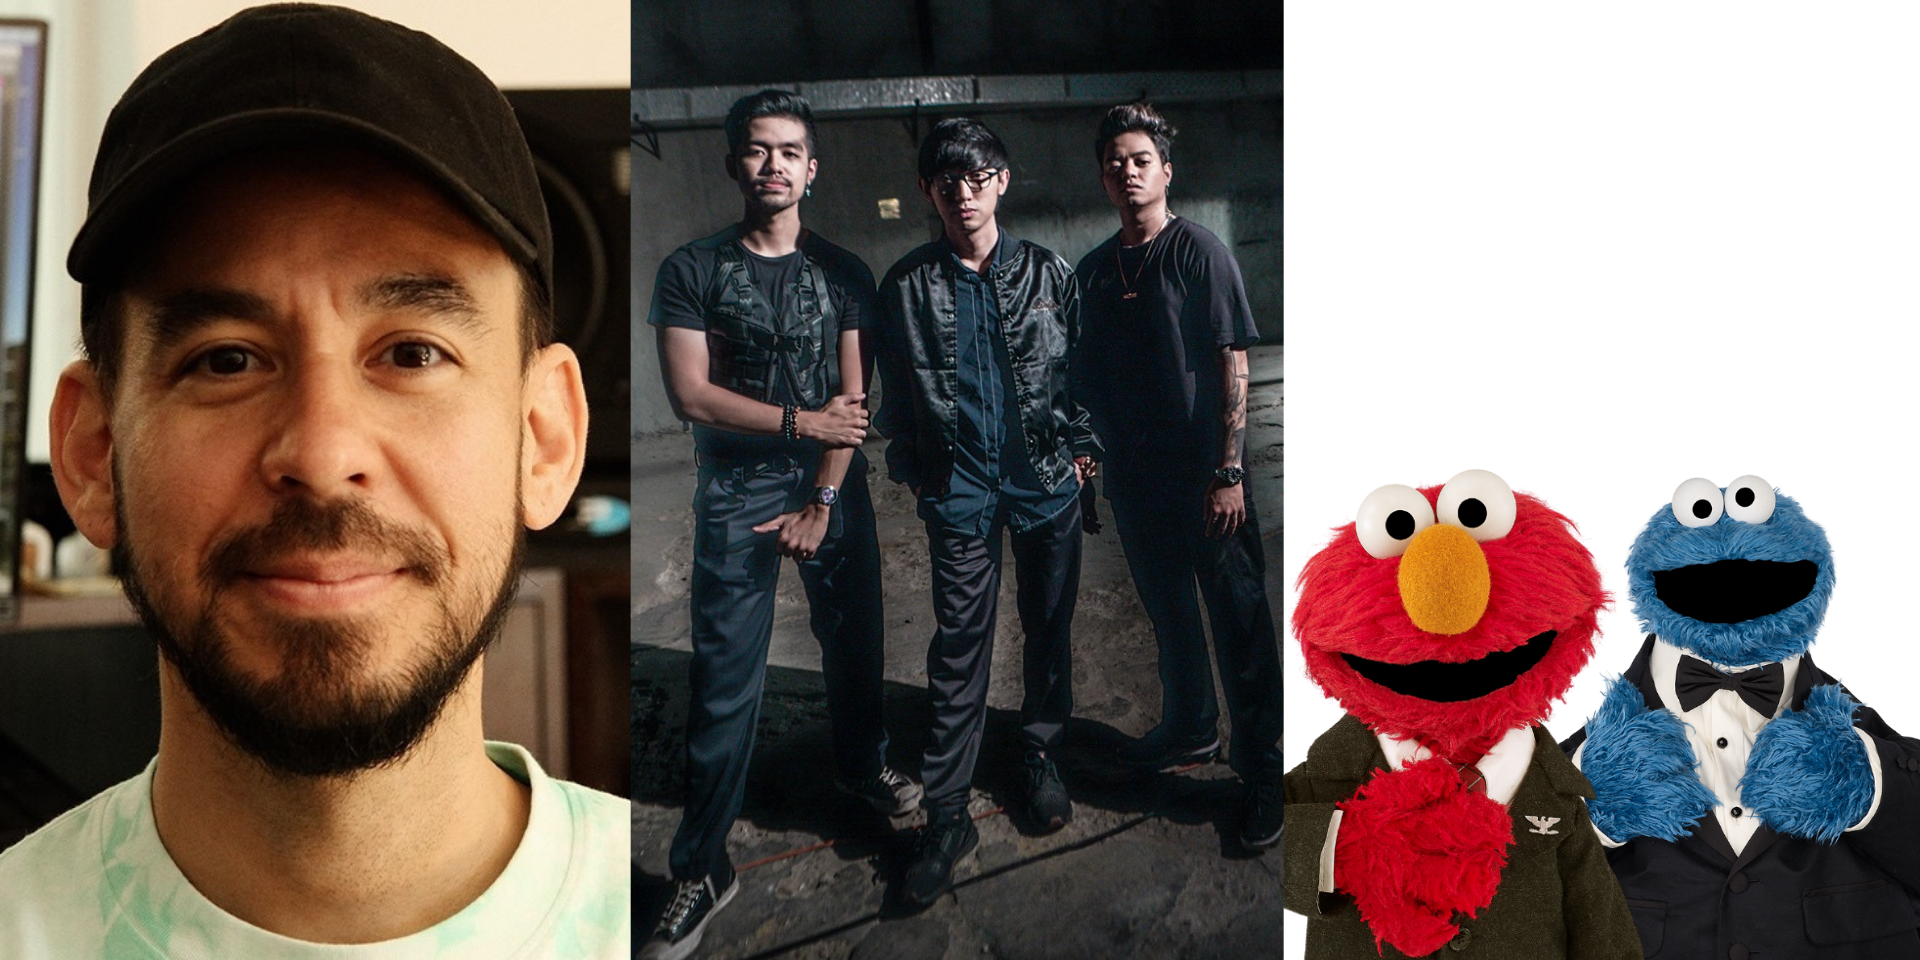 All That Matters 2020 full lineup of speakers and artists announced includes Mike Shinoda, Weird Genius, Elmo, and more